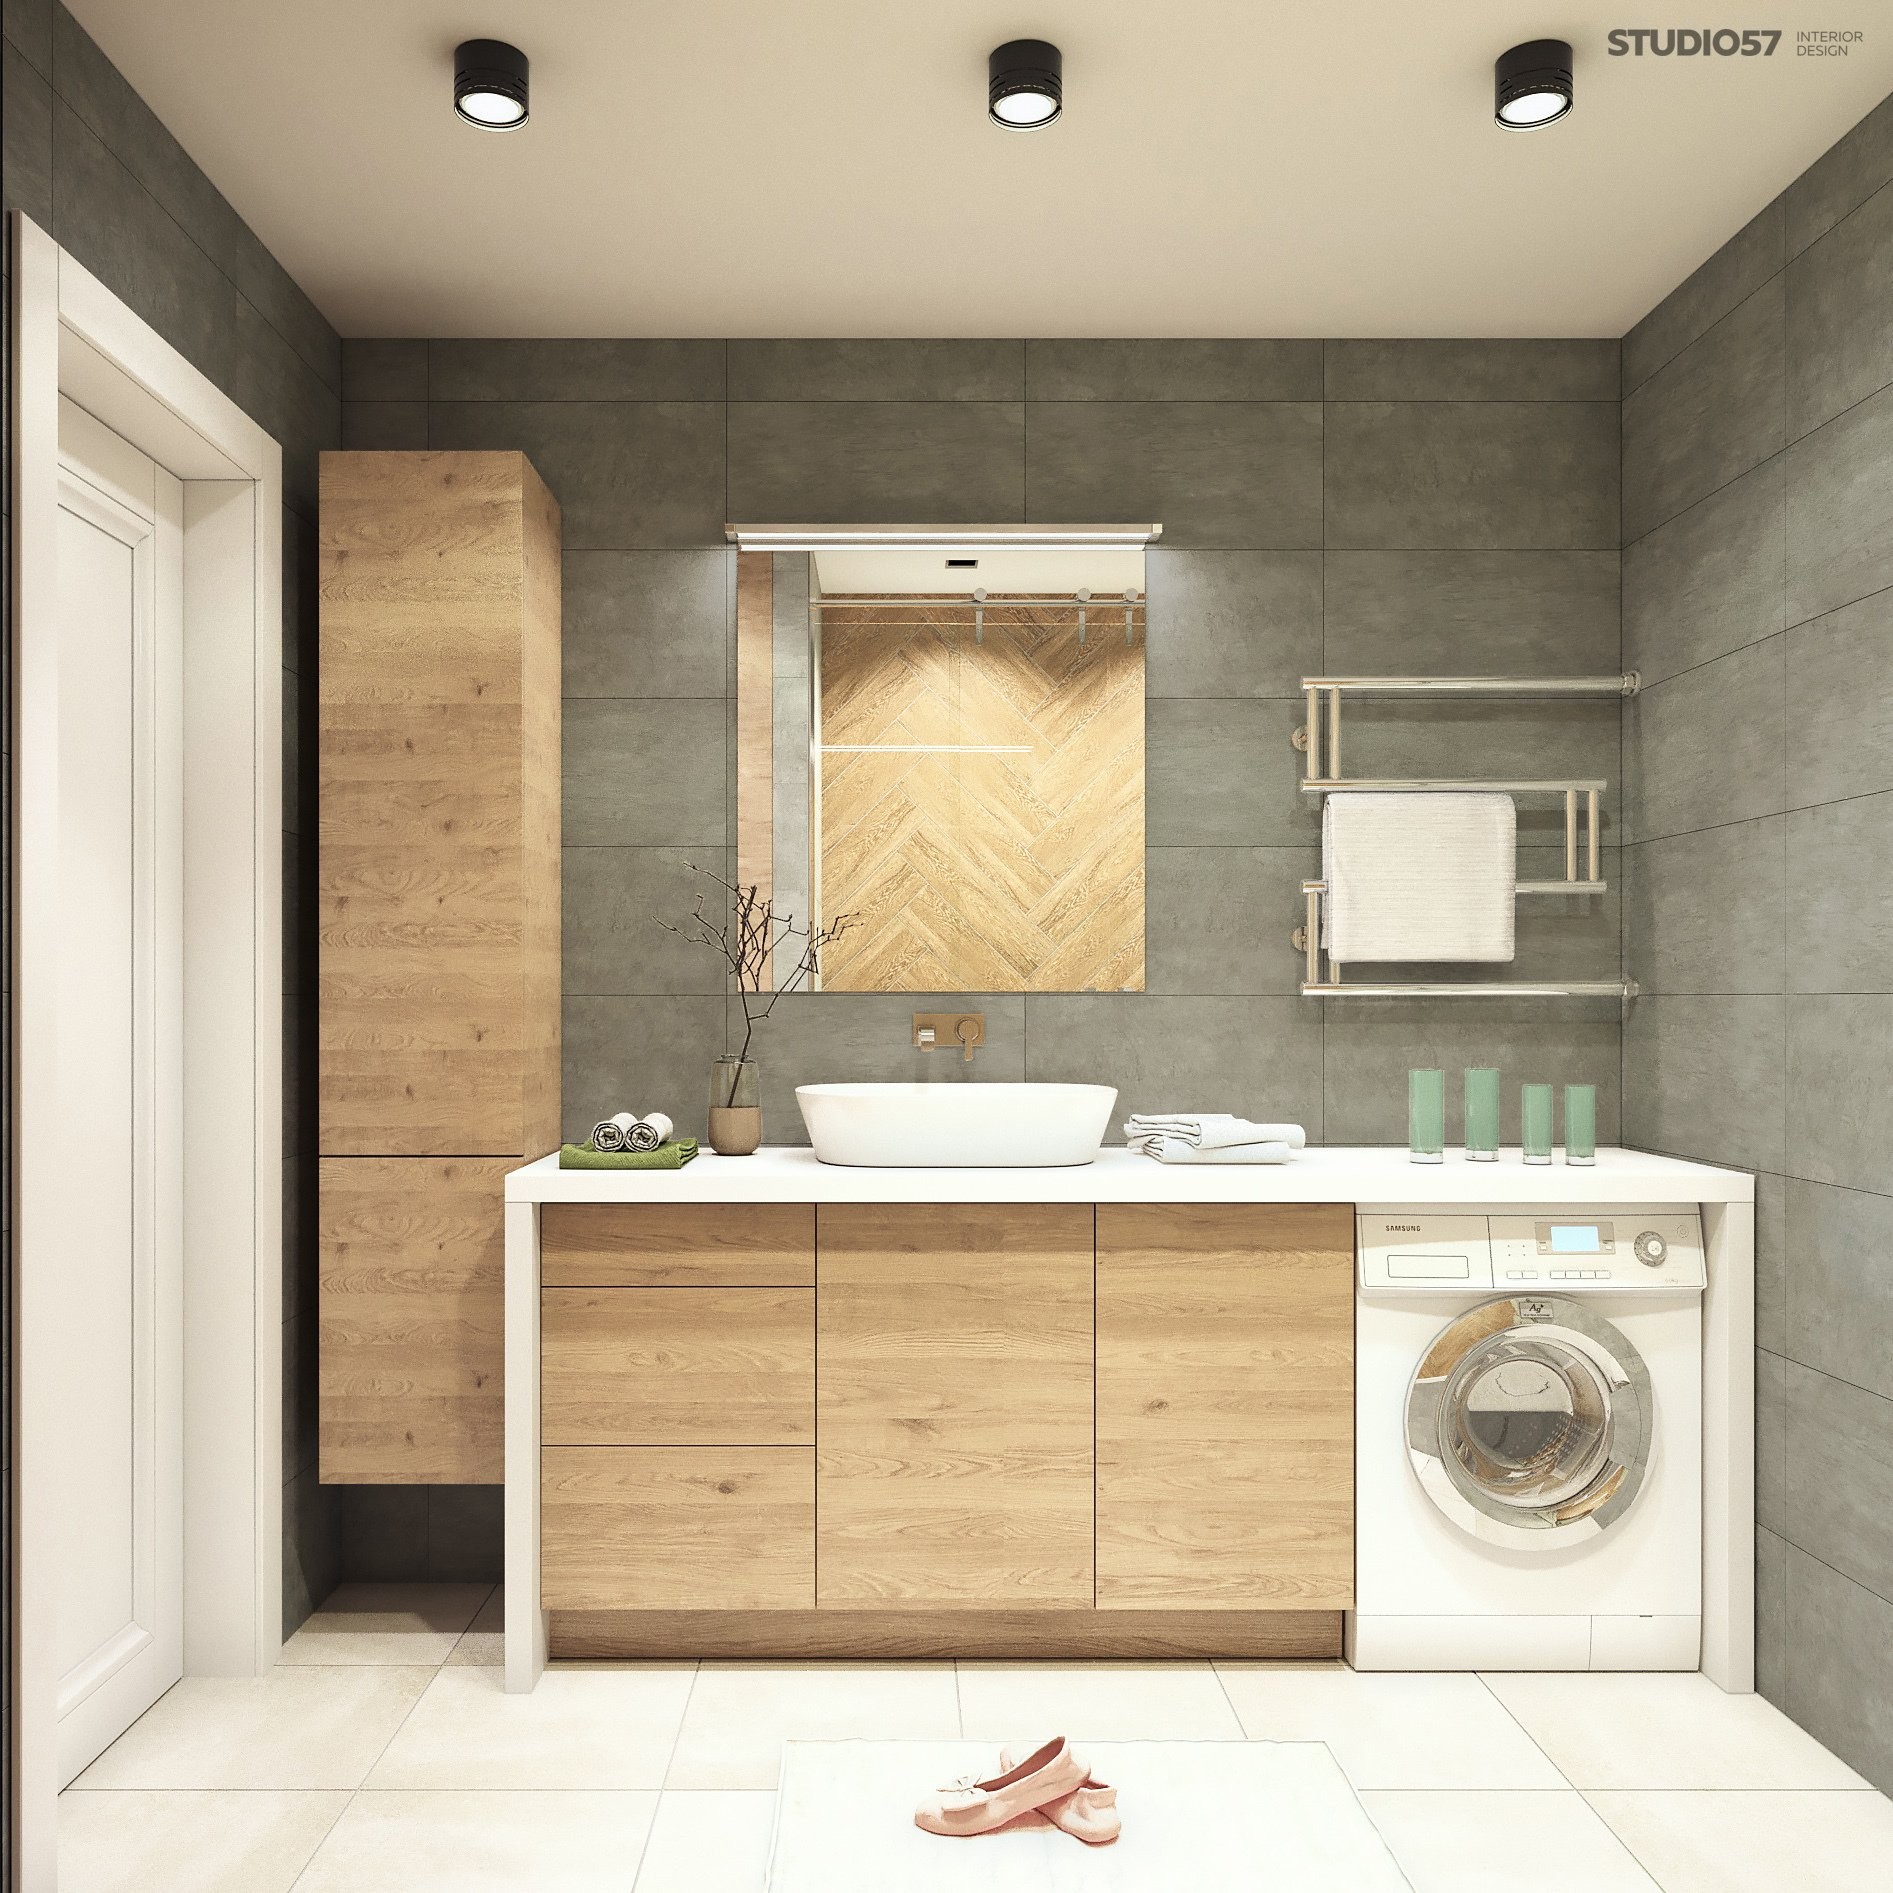 Bath in the style of Contemporary Design Photo